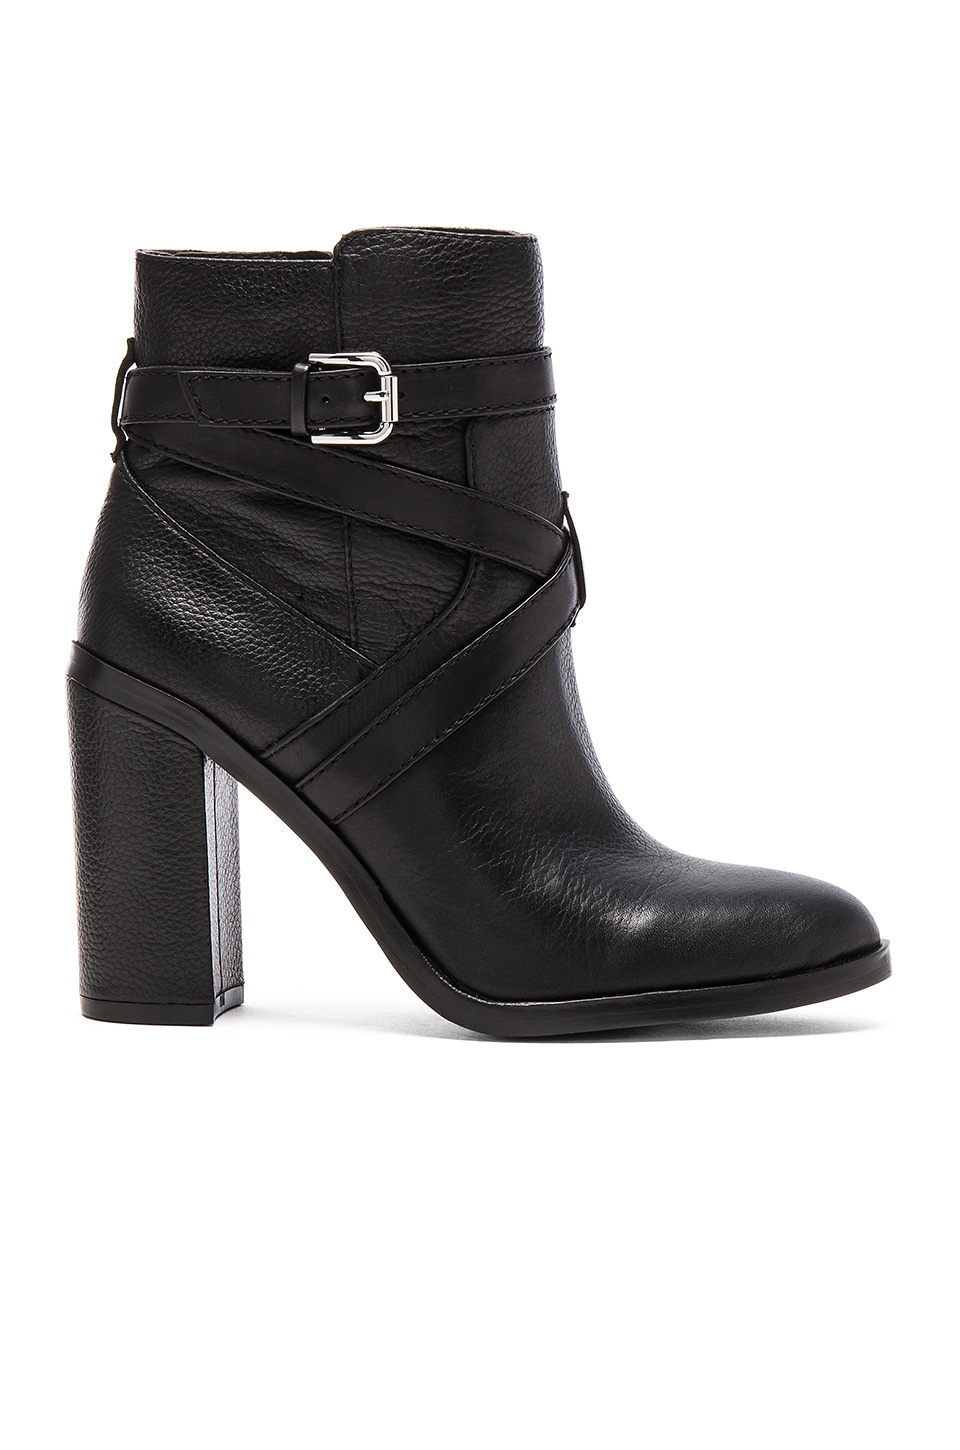 Vince Camuto Gravell Bootie in Black